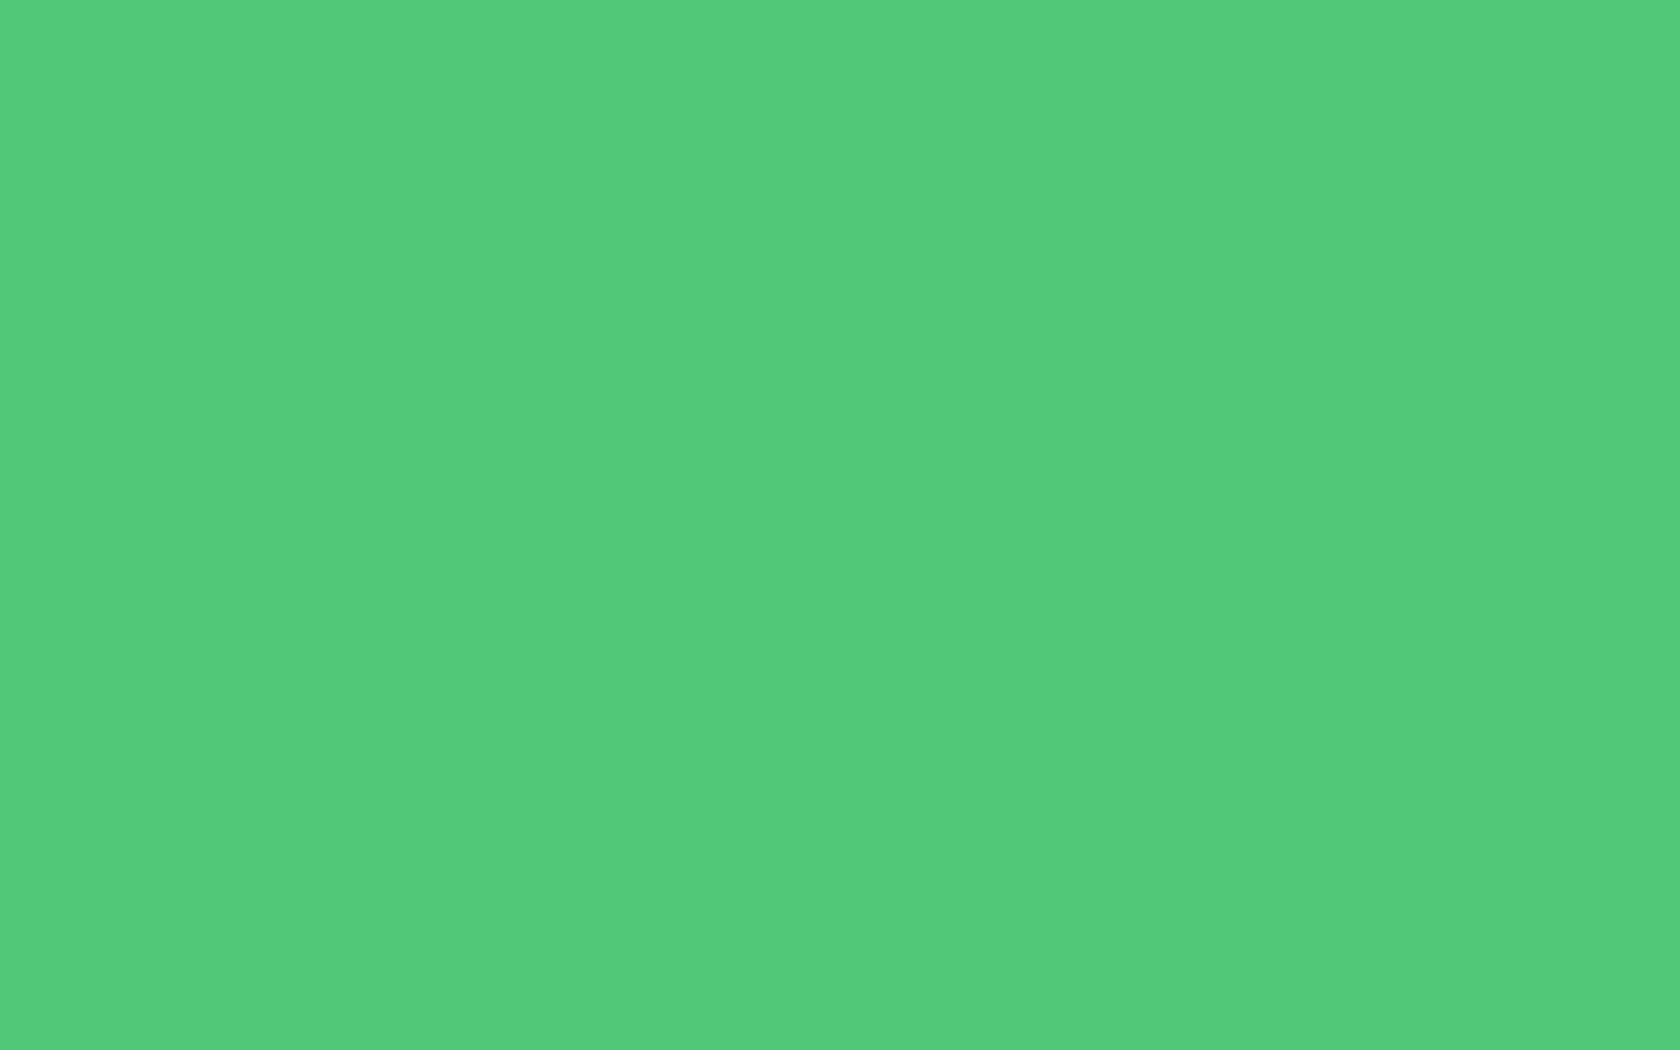 1680x1050 Paris Green Solid Color Background